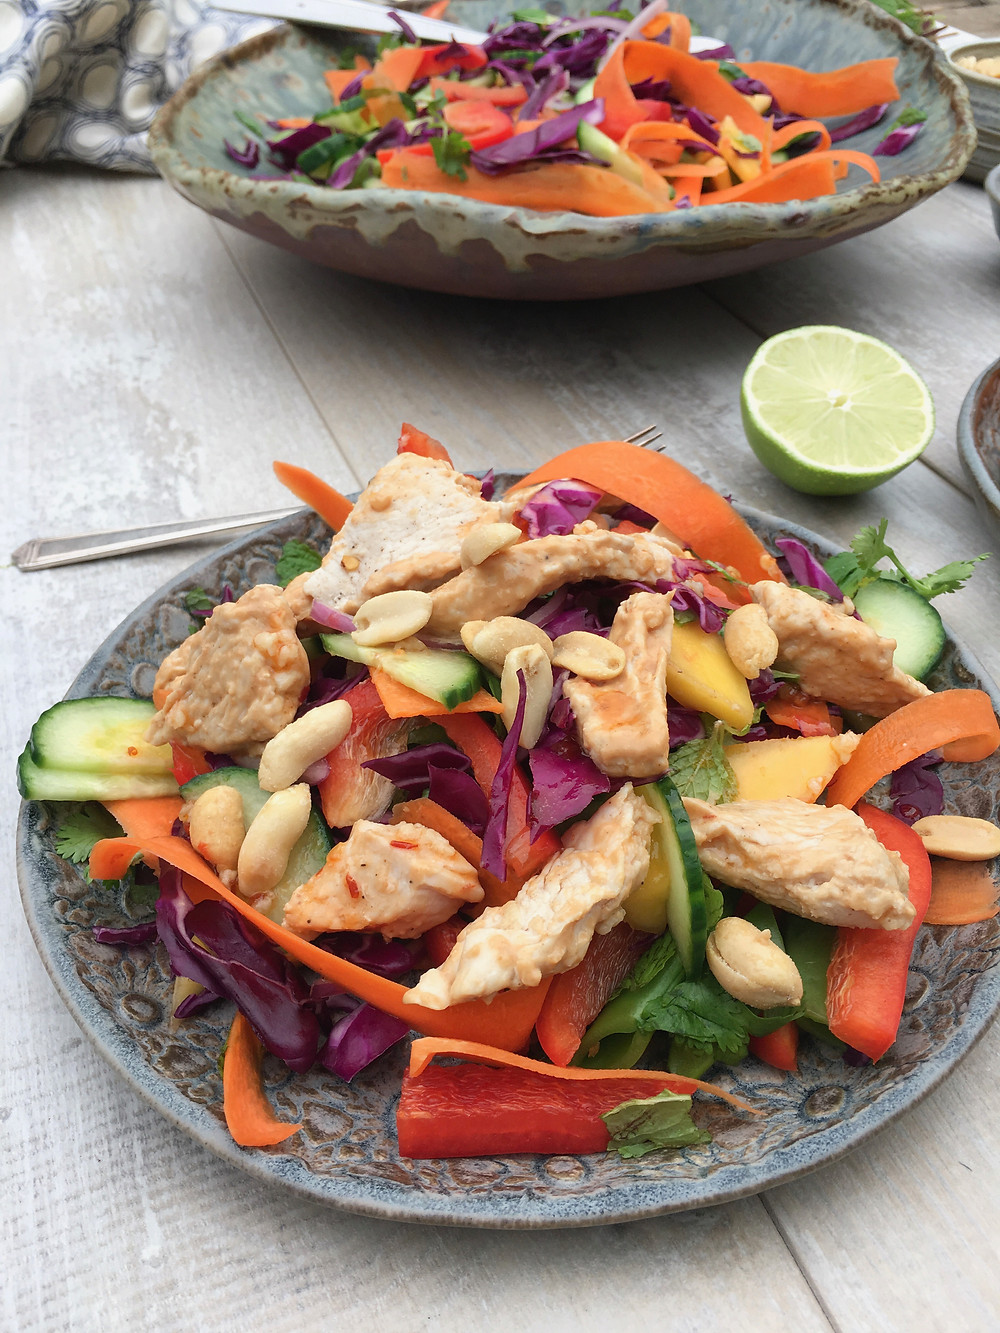 salad with turkey and peanuts